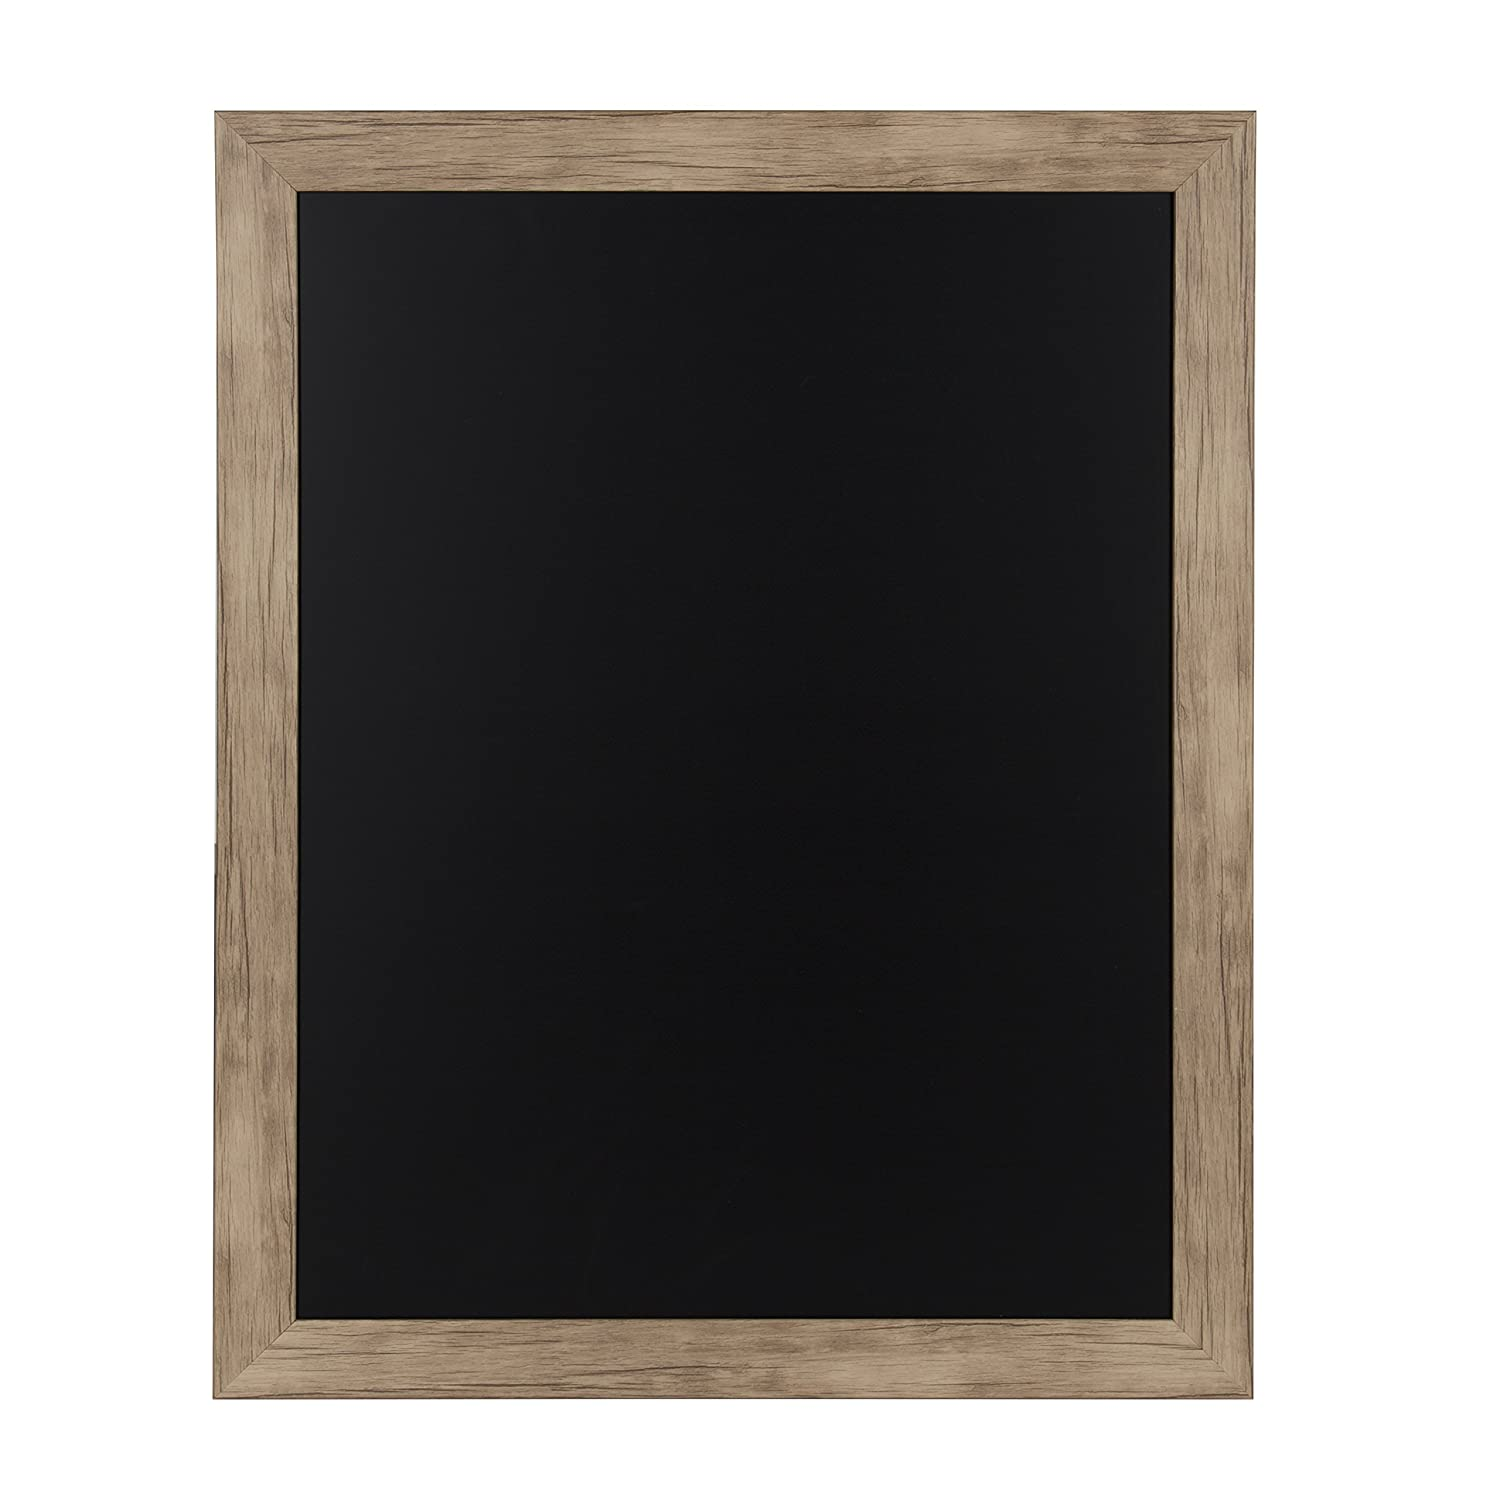 DesignOvation Beatrice Framed Magnetic Chalkboard, 13x23, Rustic Brown Uniek 209361